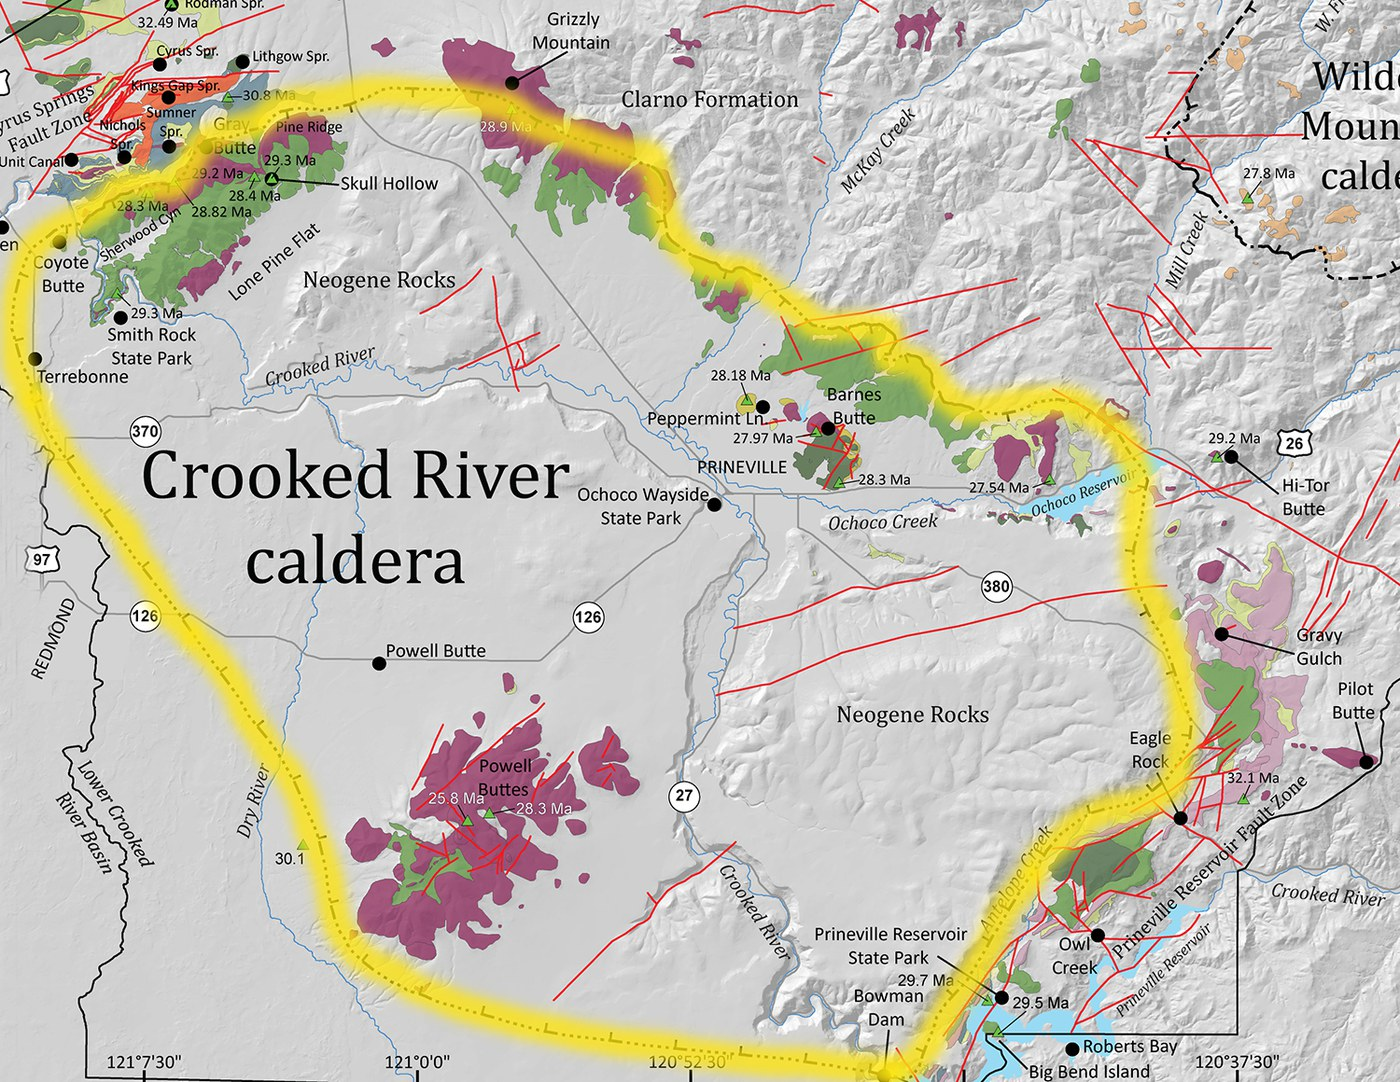 The boundaries of the Crooked River Caldera, highlighted here. Graphic: J.D. McClaughry, from Field Trip Guide to the Oligocene Crooked River caldera: Central Oregon's supervolcano, Crook, Deschutes, and Jefferson Counties, Oregon.